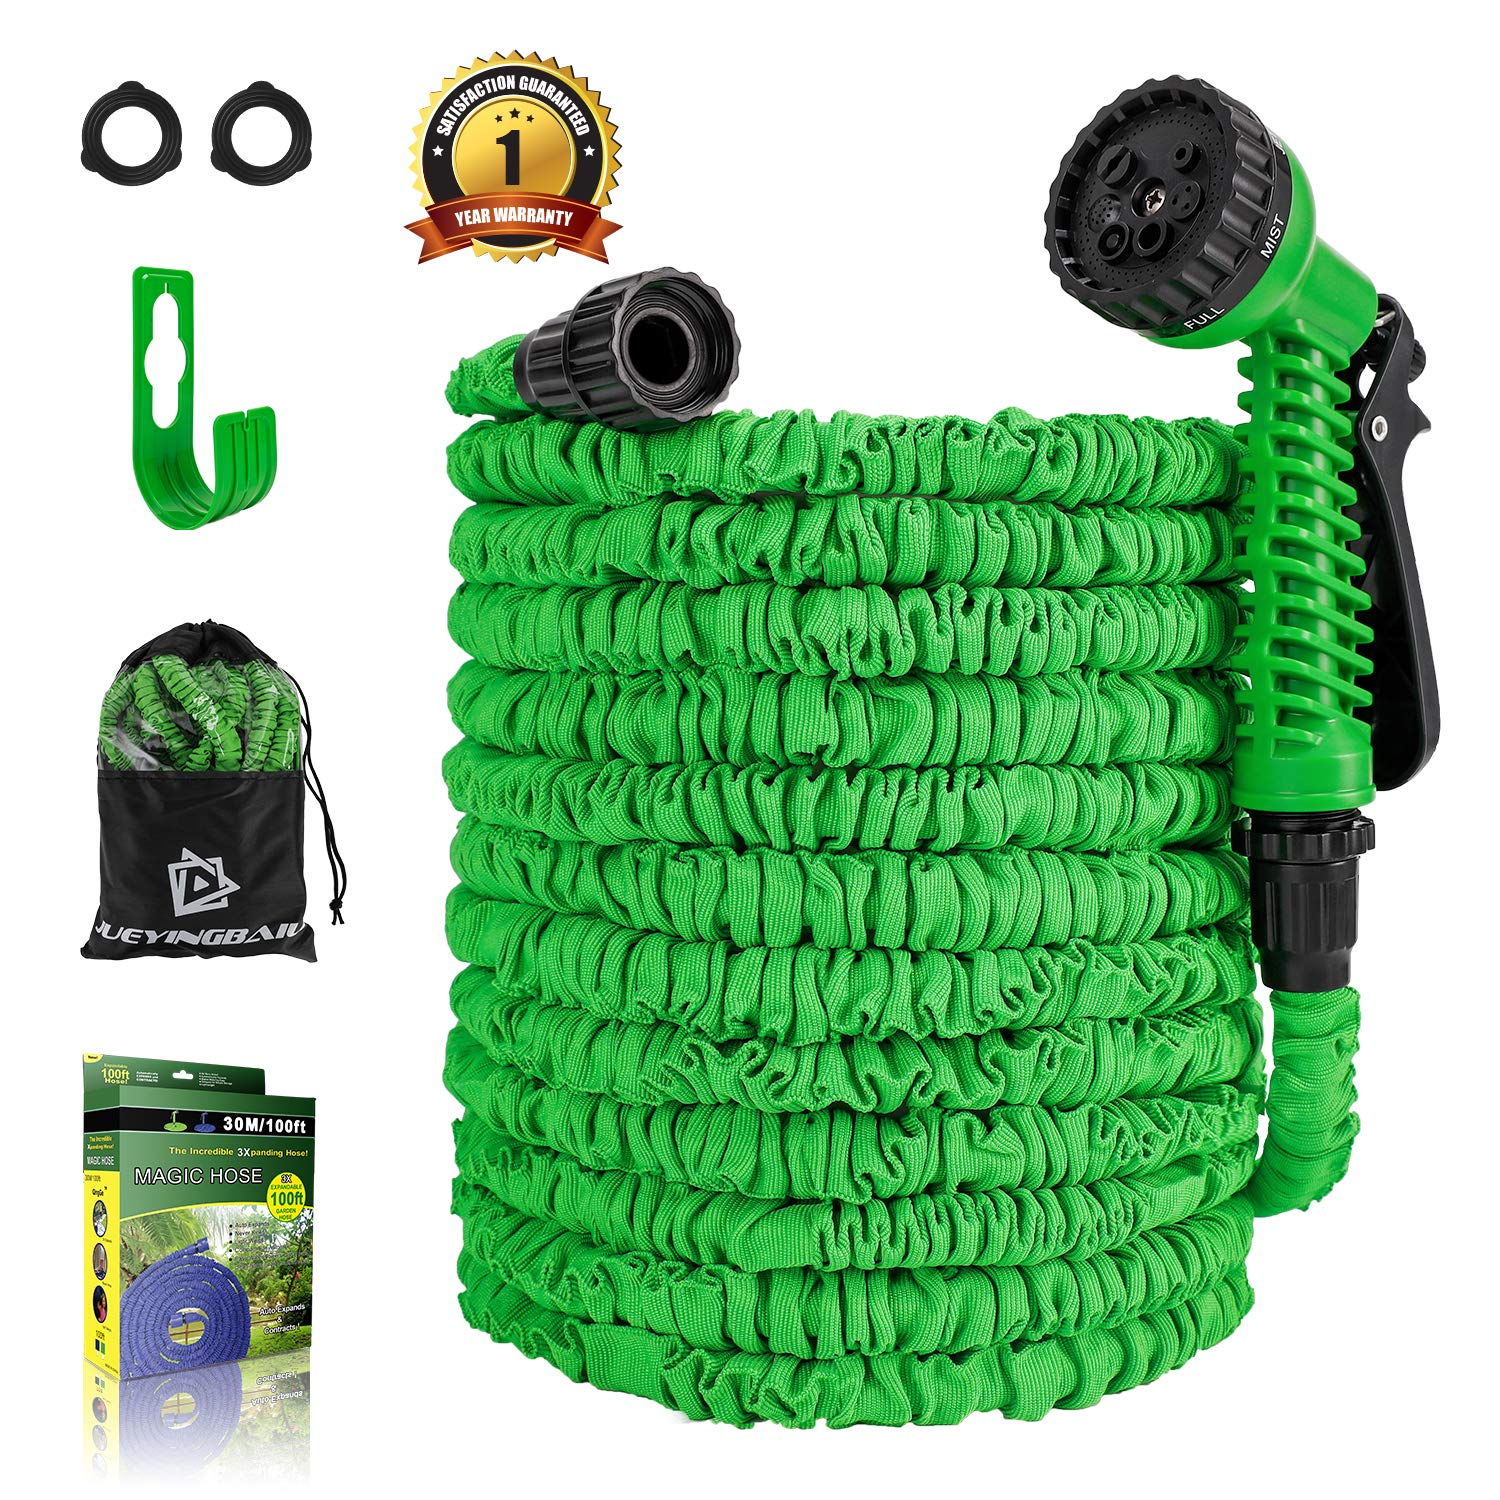 Expandable Water Hose 75FT Lightweight Triple Latex Core /& Extra Strength Fabric Water Pipe with 3//4 Solid Fittings Hose Extension Joint for Outdoor Gardening Lawn Car Watering Garden Hose